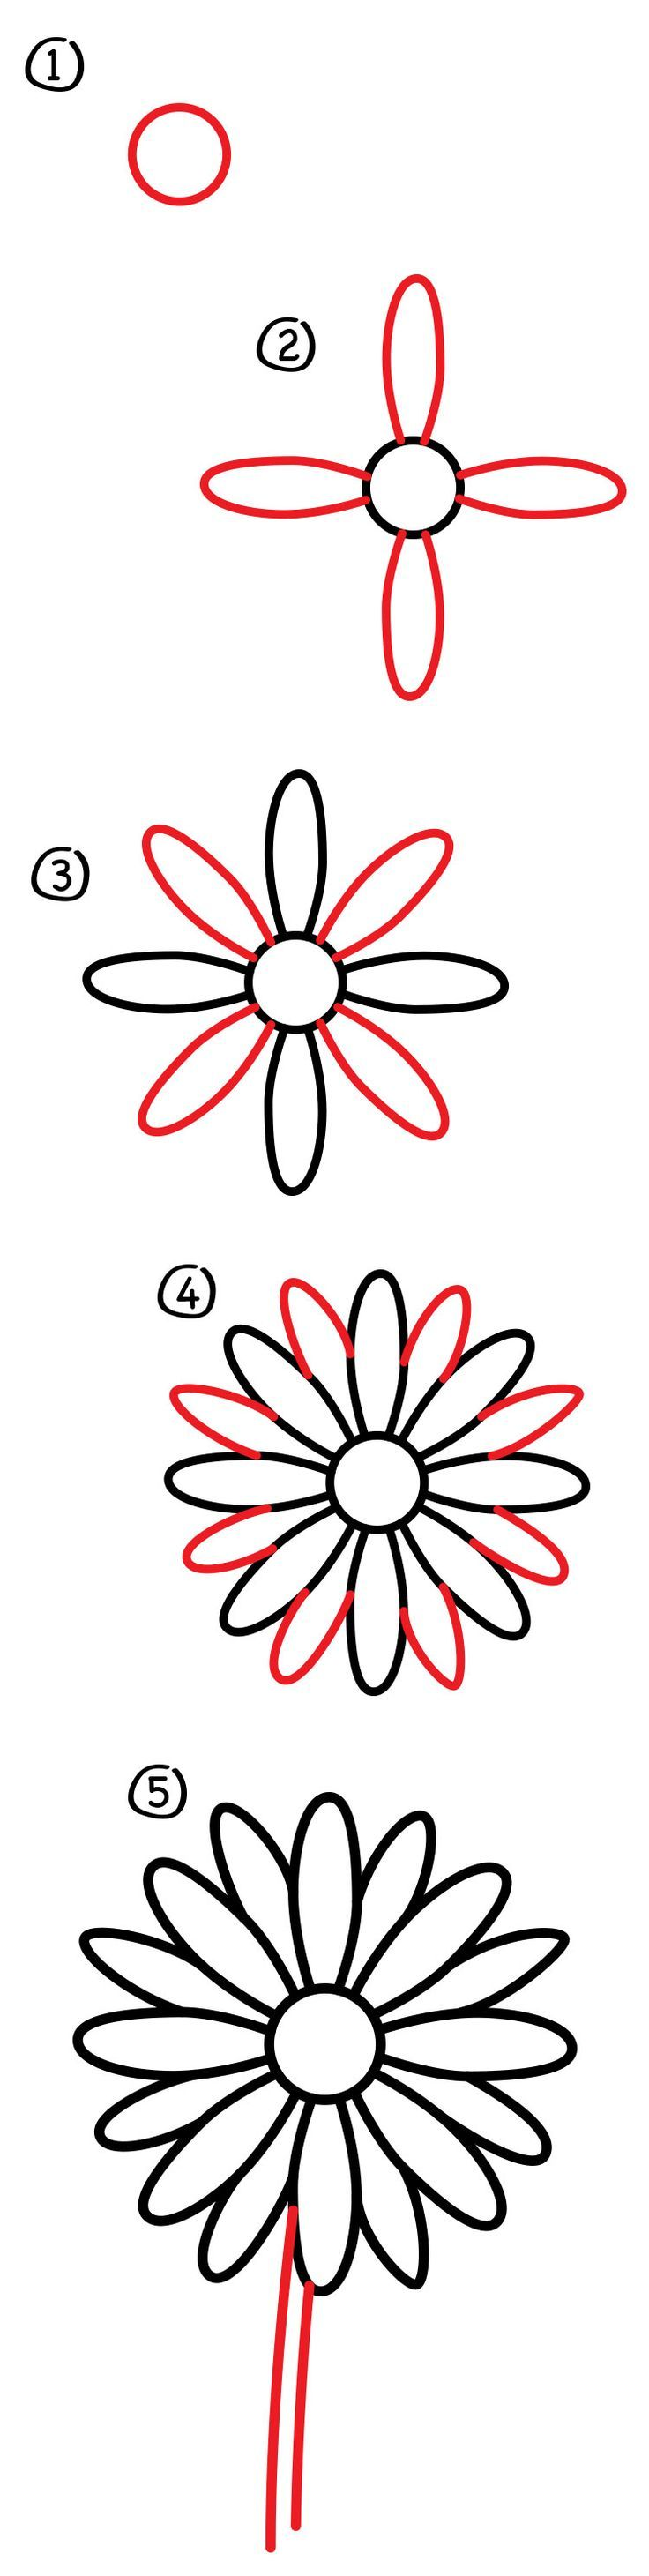 How To Draw A Daisy Flower  Art For Kids Hub